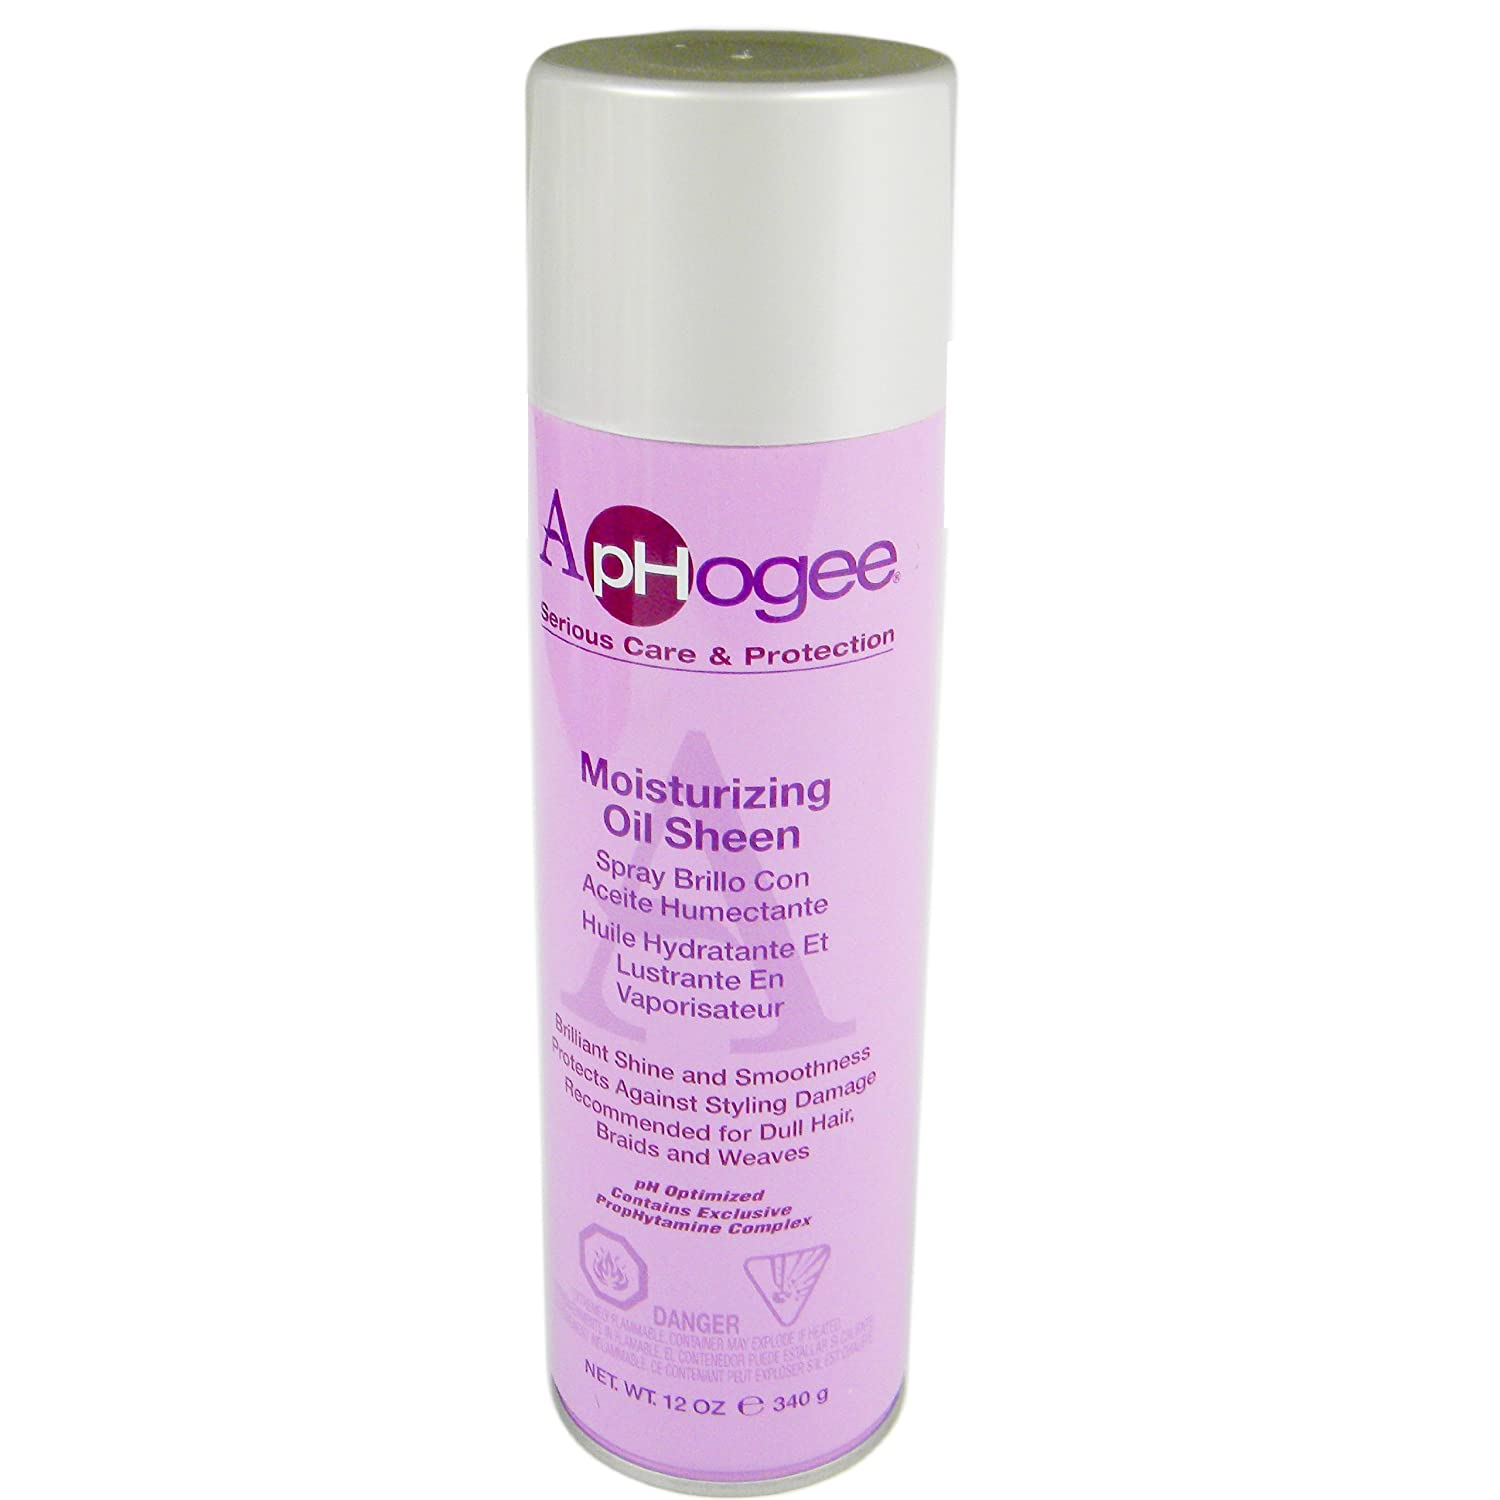 Aphogee Moisturizing Oil Sheen Spray 12oz